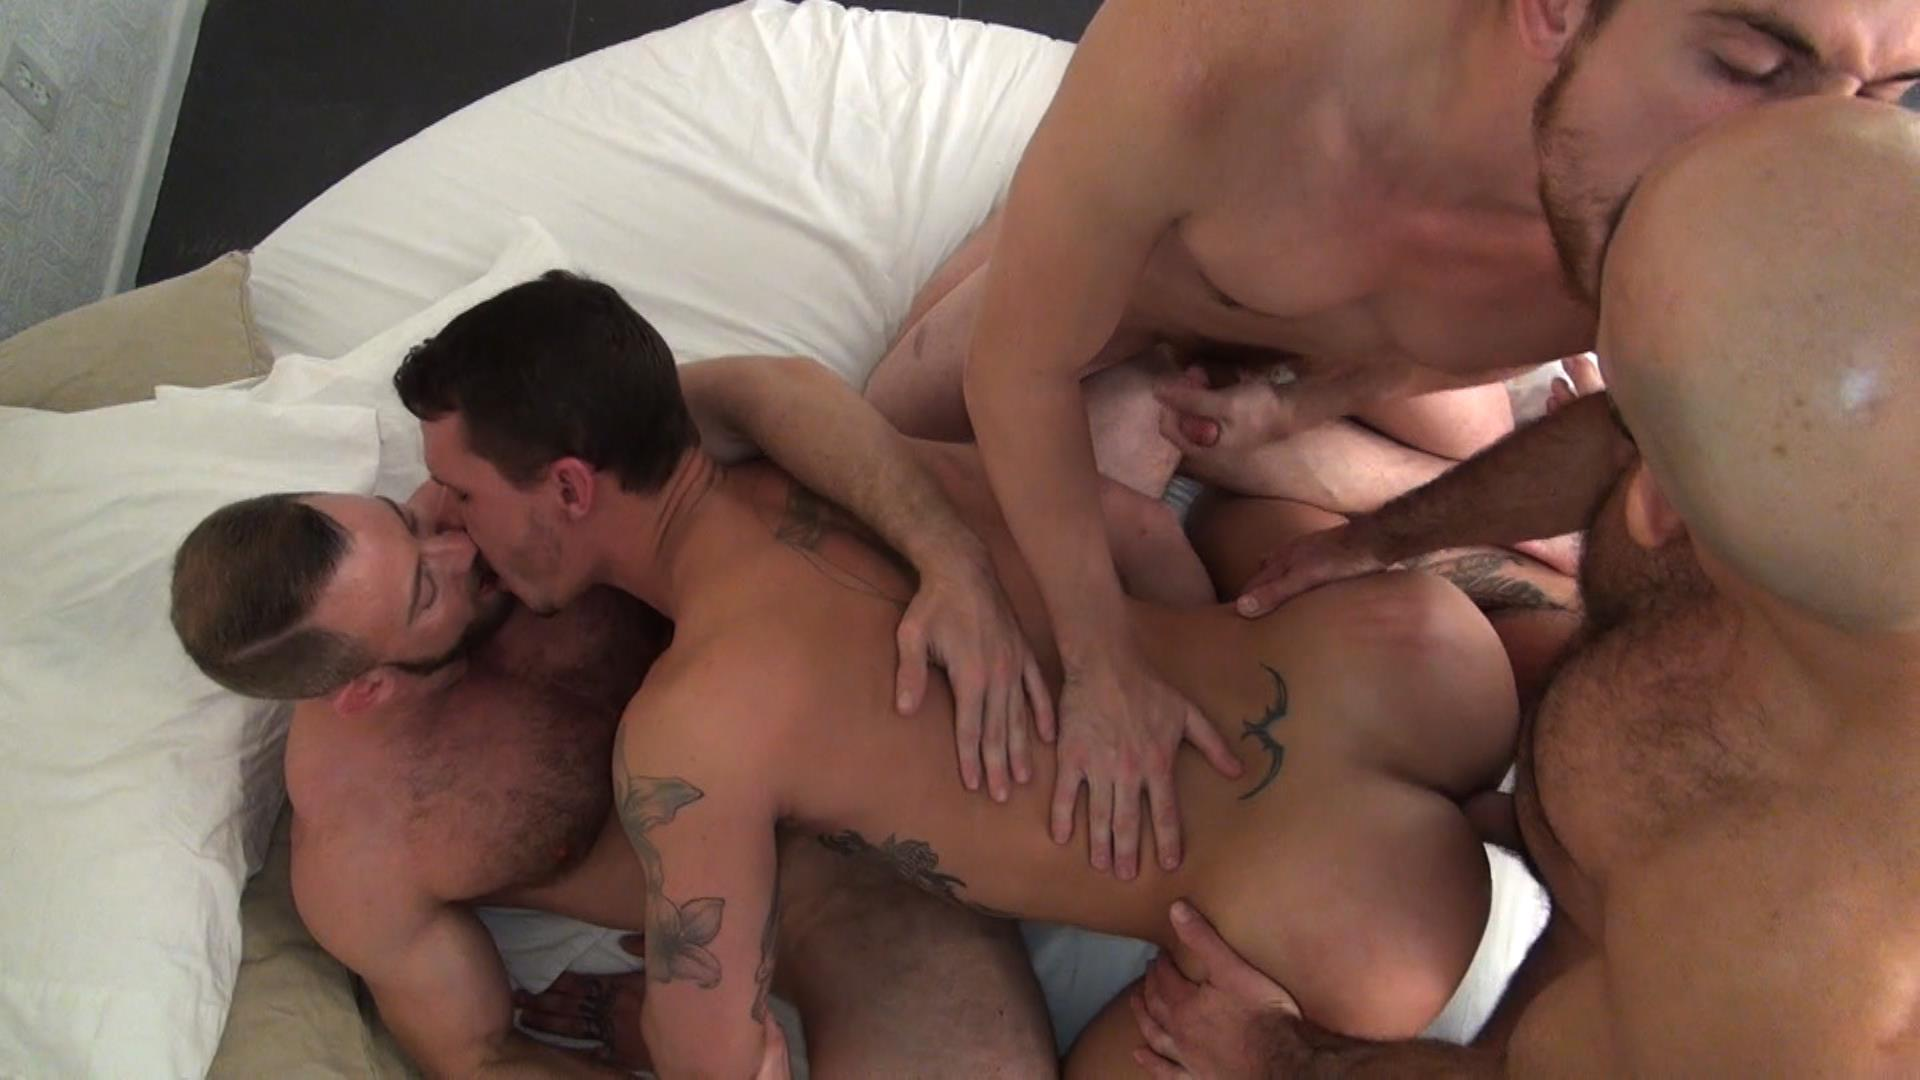 Raw-Fuck-Club-Dayton-OConnor-Tate-Ryder-Shay-Michaels-Adam-Russo-Bareback-Breeding-Amateur-Gay-Porn-7 Tate Ryder Gets Three Hairy Muscle Daddy Bareback Cocks